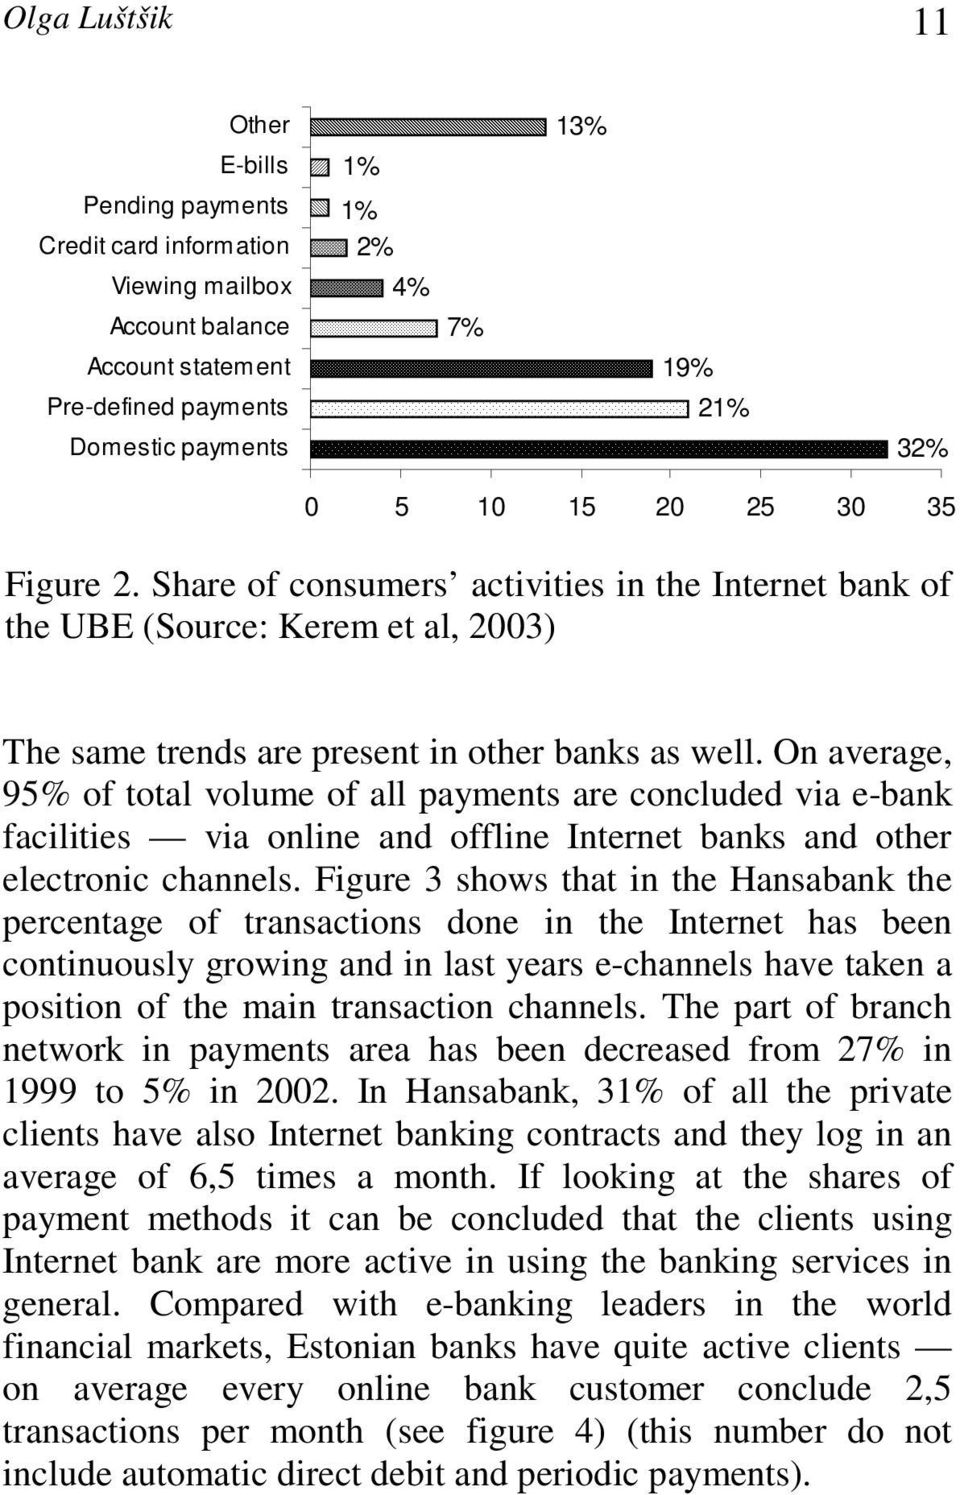 On average, 95% of total volume of all payments are concluded via e-bank facilities via online and offline Internet banks and other electronic channels.